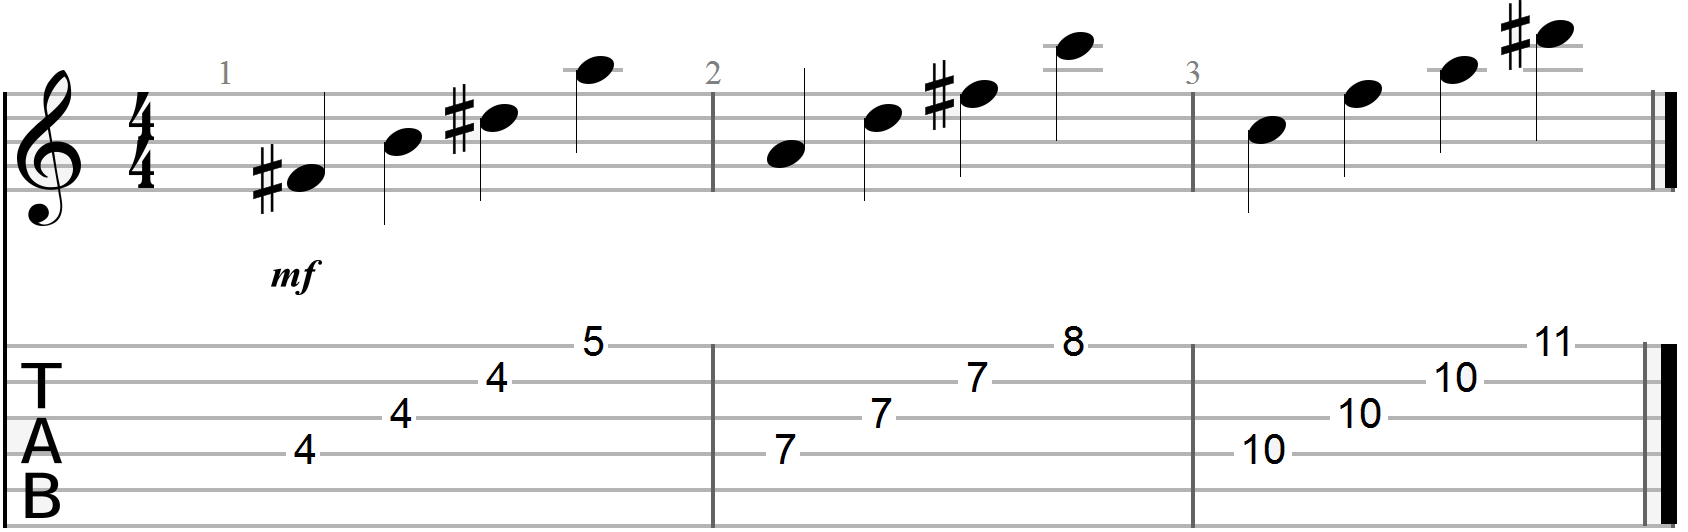 B7 Guitar Chord B7 Chord Charts Exercises And Quick Guitar Lesson